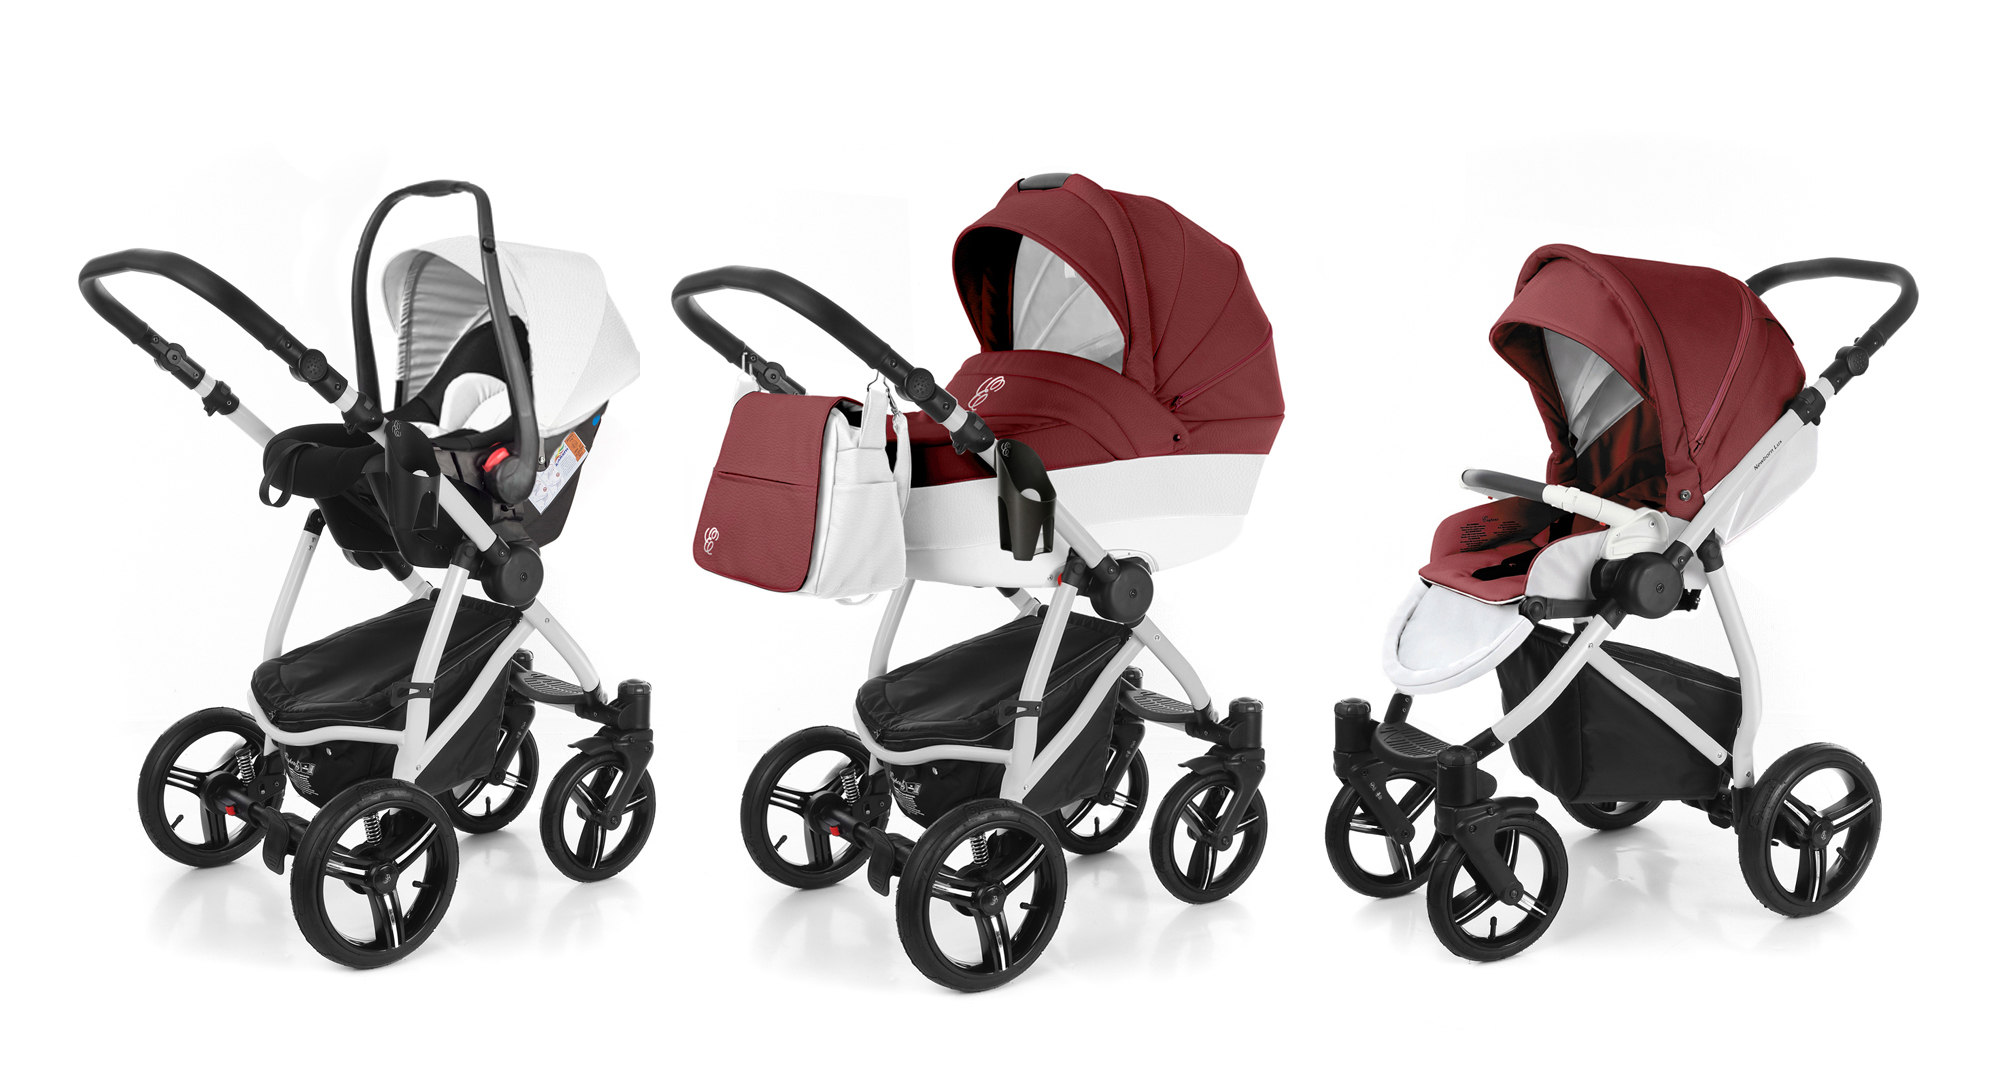 Коляска 3 в 1 Esspero Grand Newborn Lux (шасси Grey). Фото N7